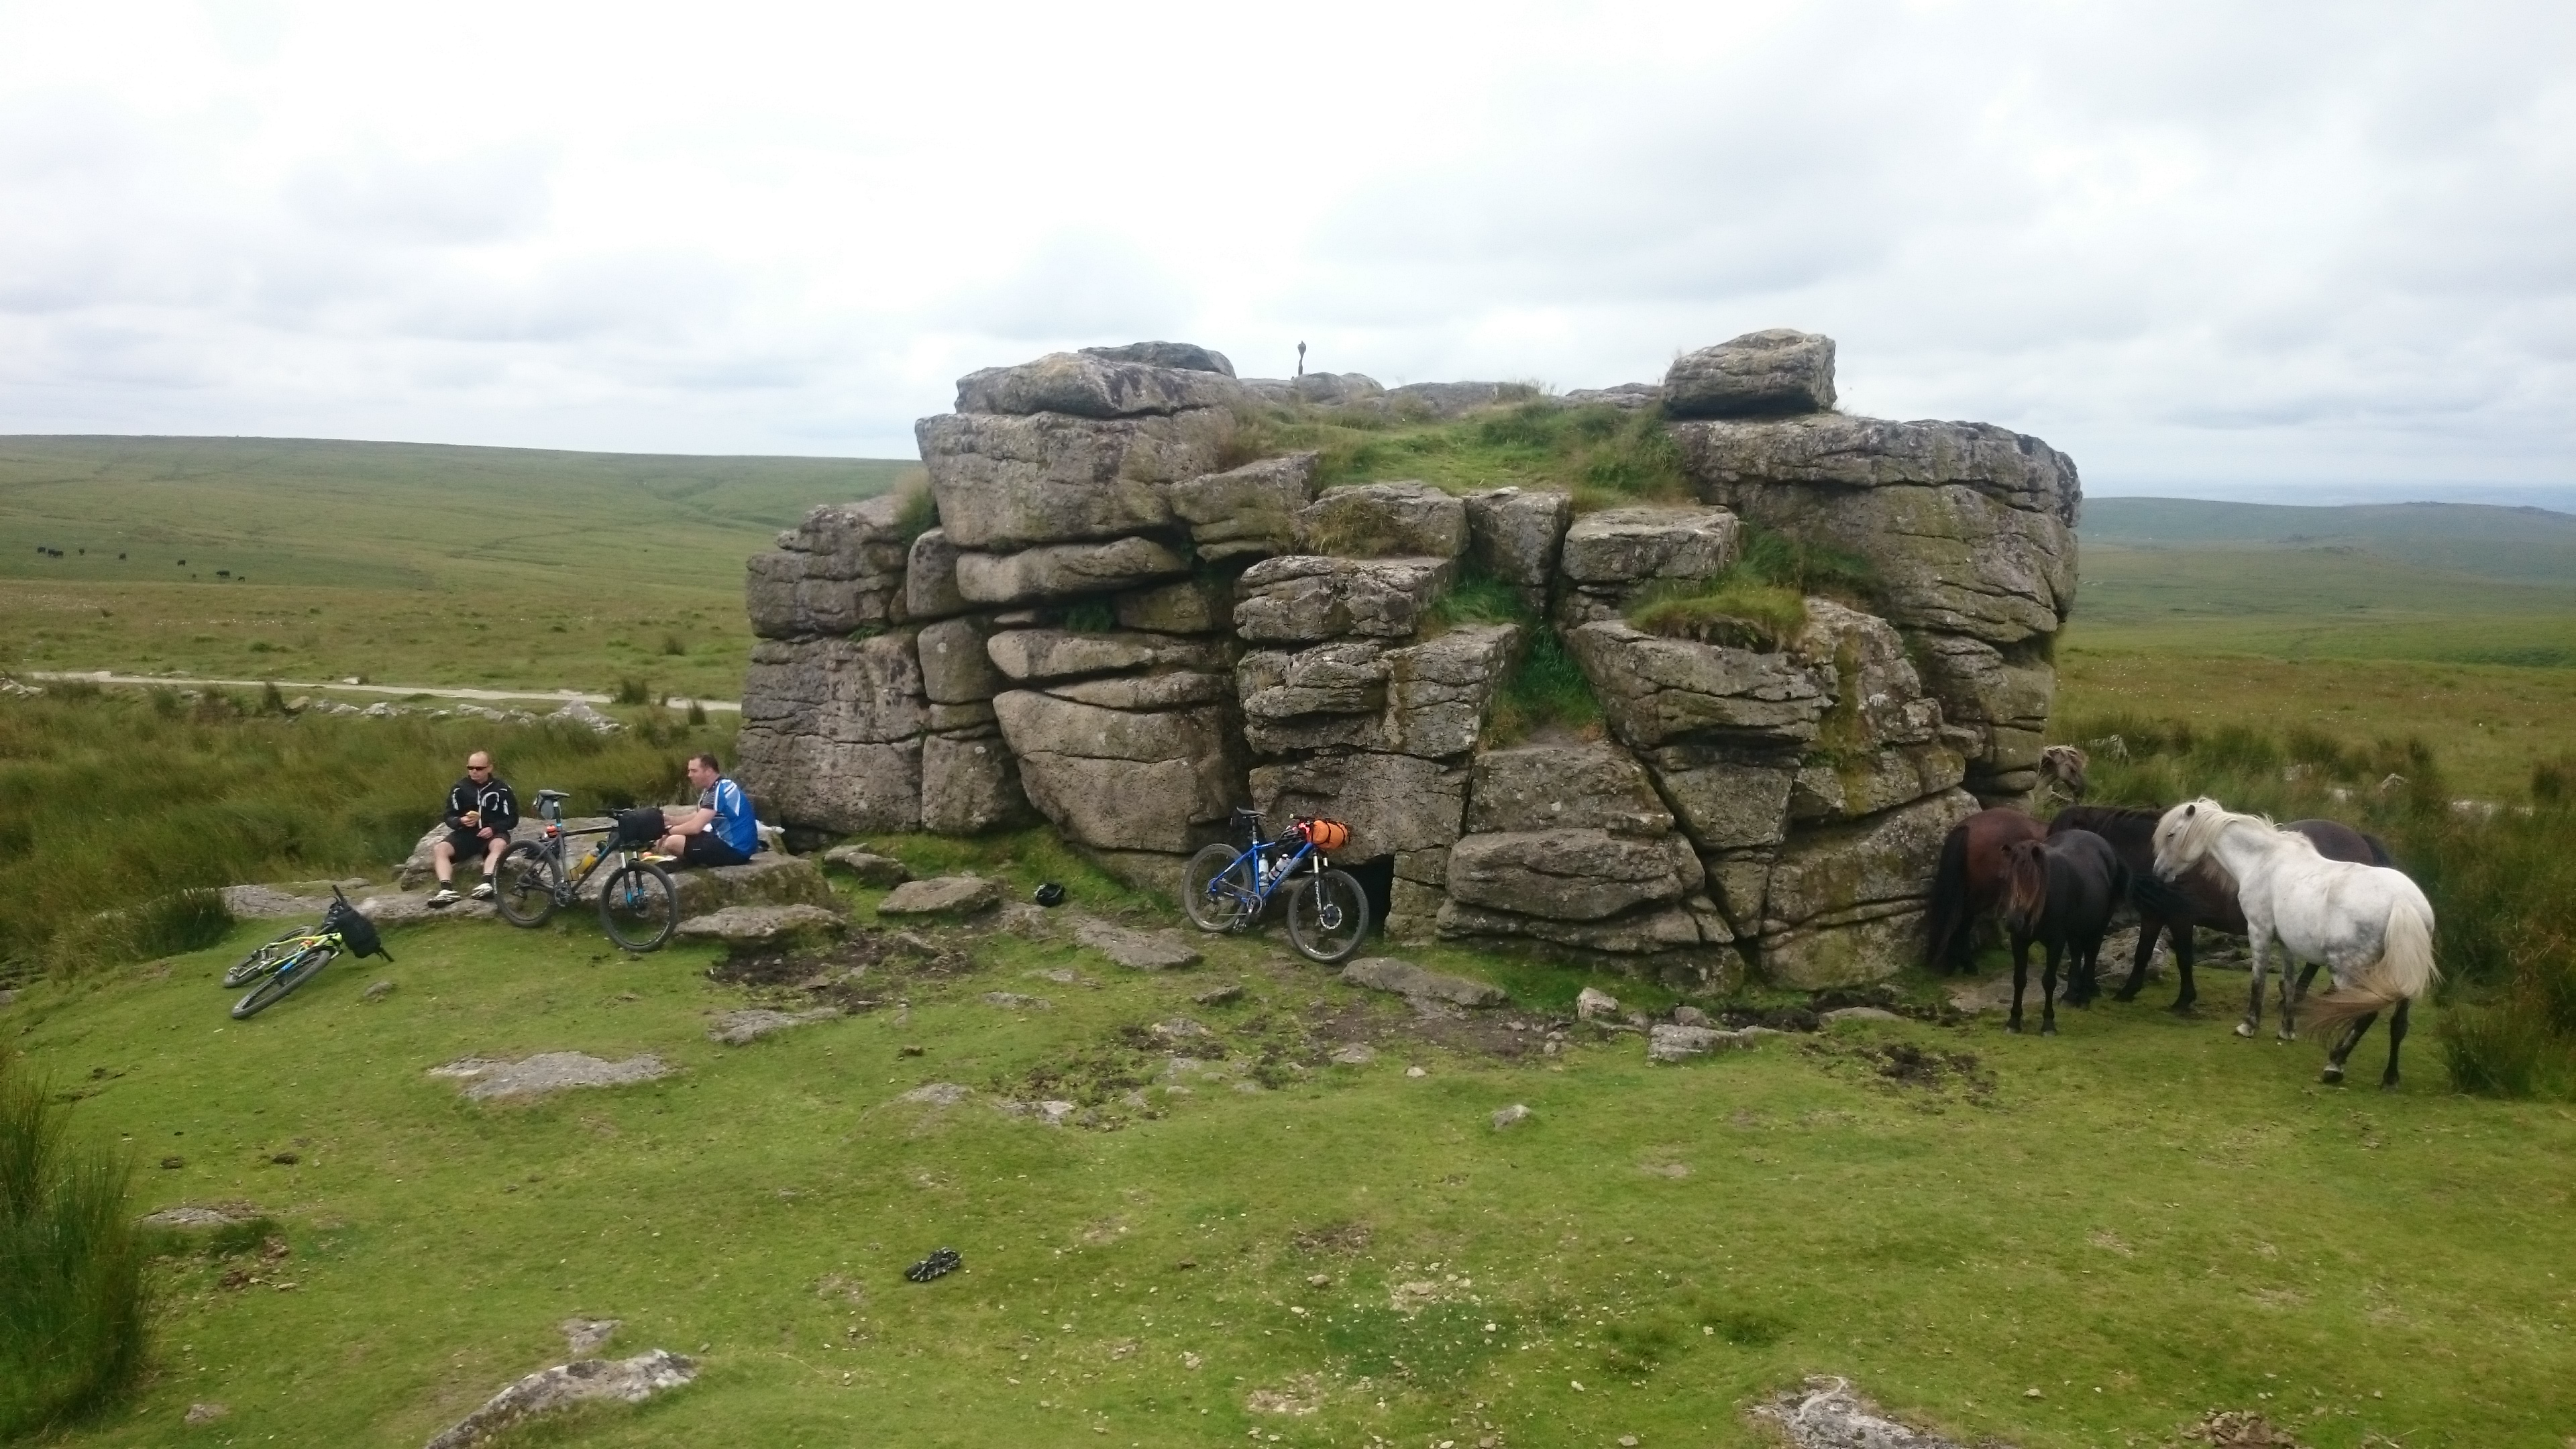 Dartmoor Epic 2016, Day 2